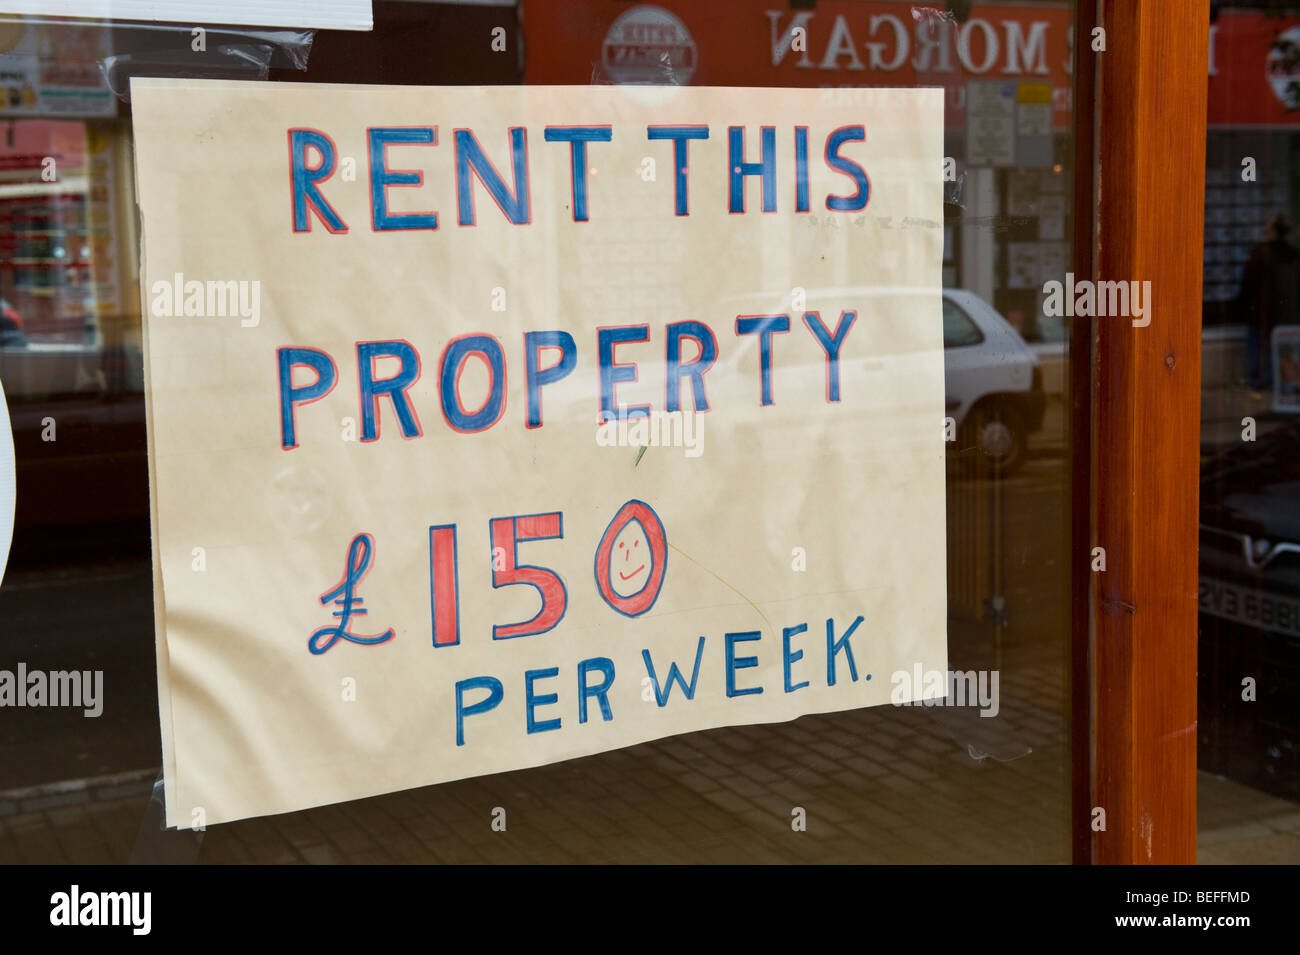 RENT THIS PROPERTY £150 PER WEEK sign in window of shop to let in Neath South Wales UK - Stock Image